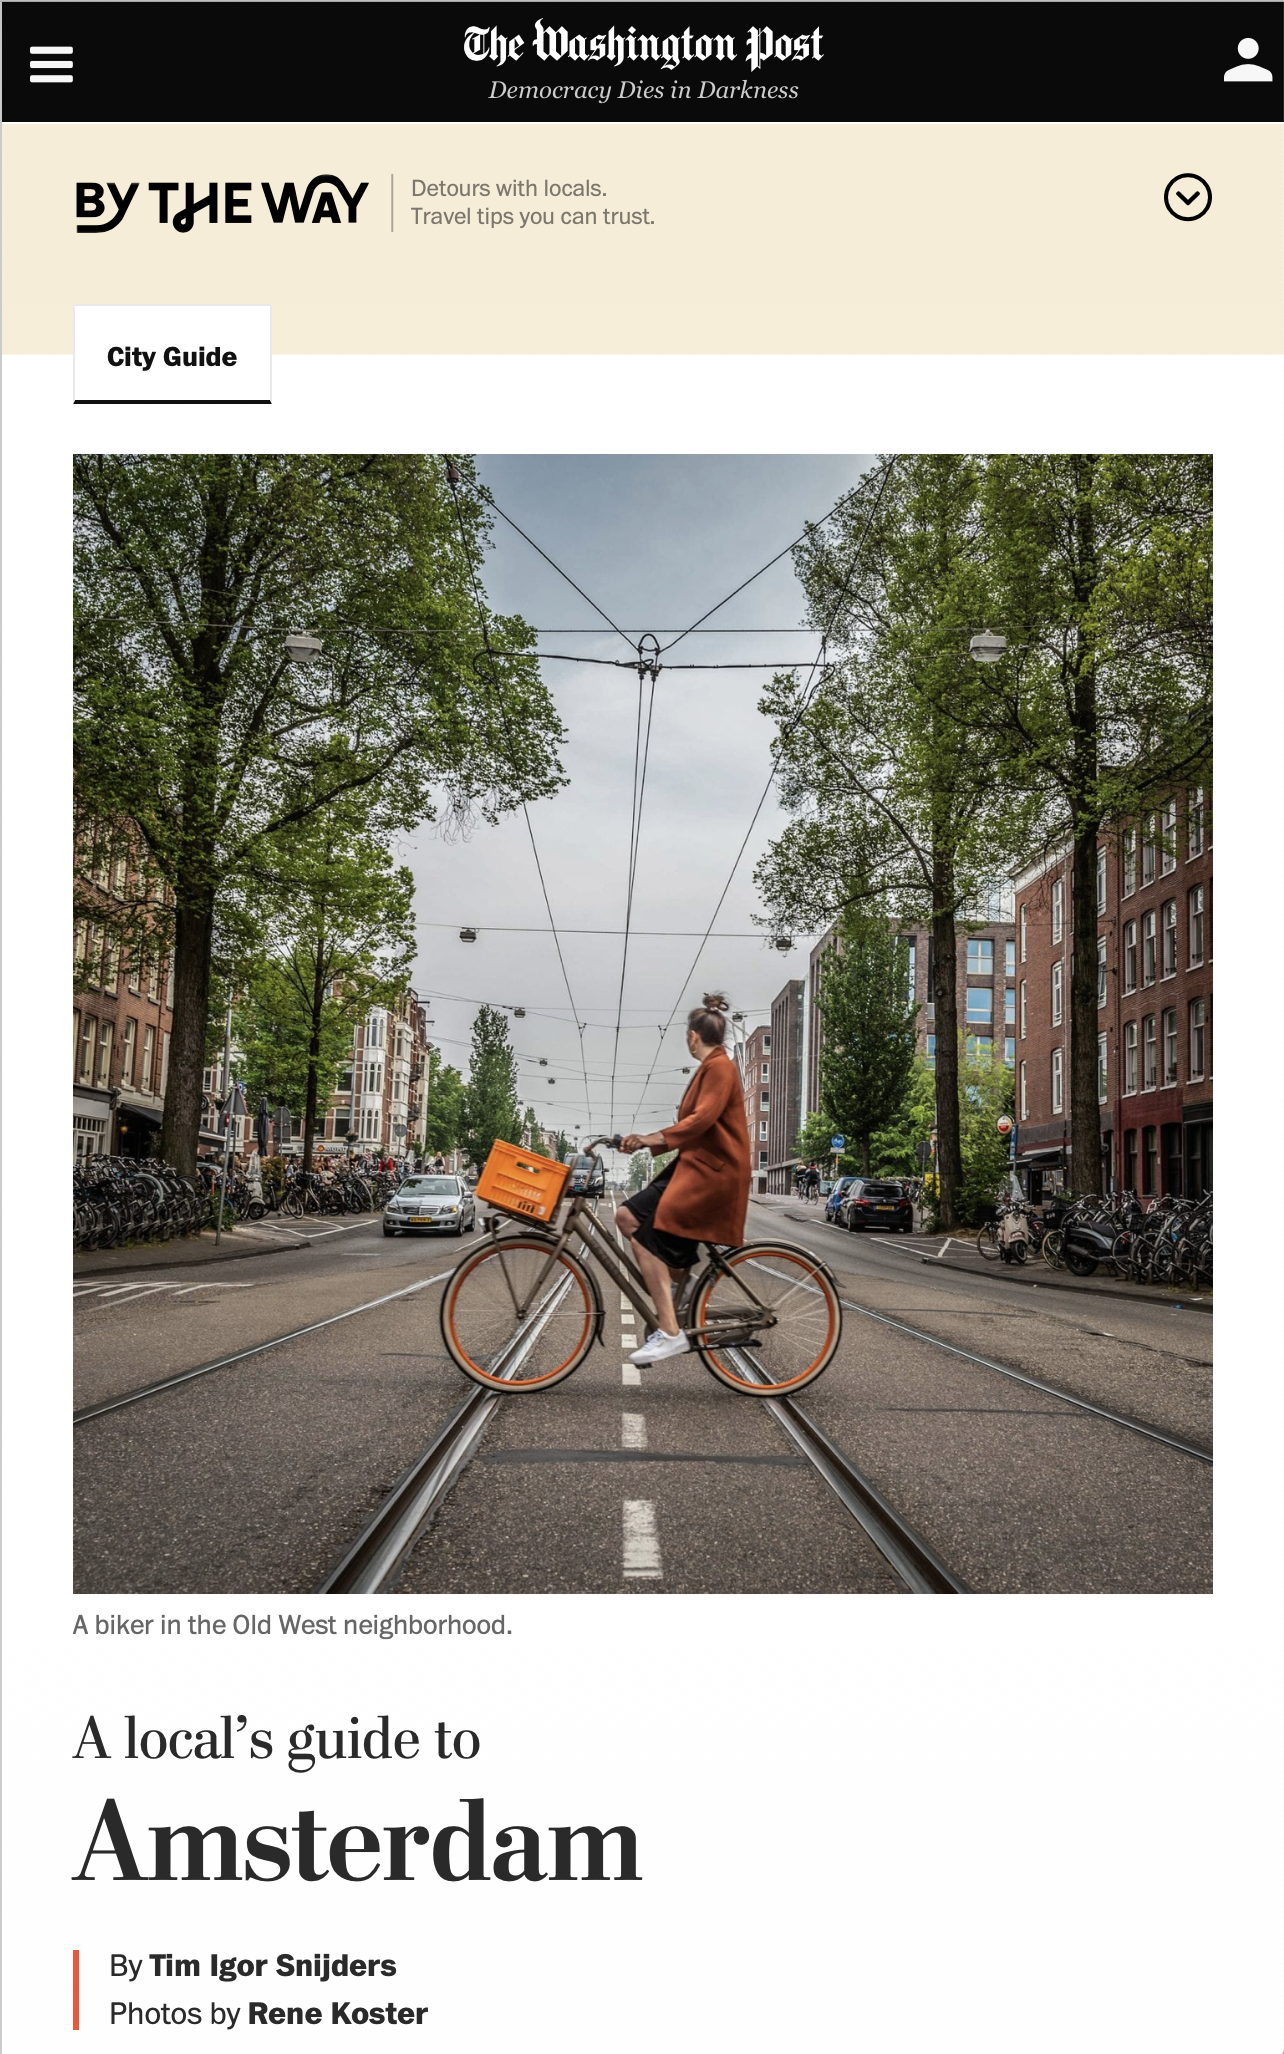 Introducing @bytheway, a new travel site from the @washingtonpost. If you're looking for a local's perspective, I've got you covered for Amsterdam.   The Washingtonpost.com